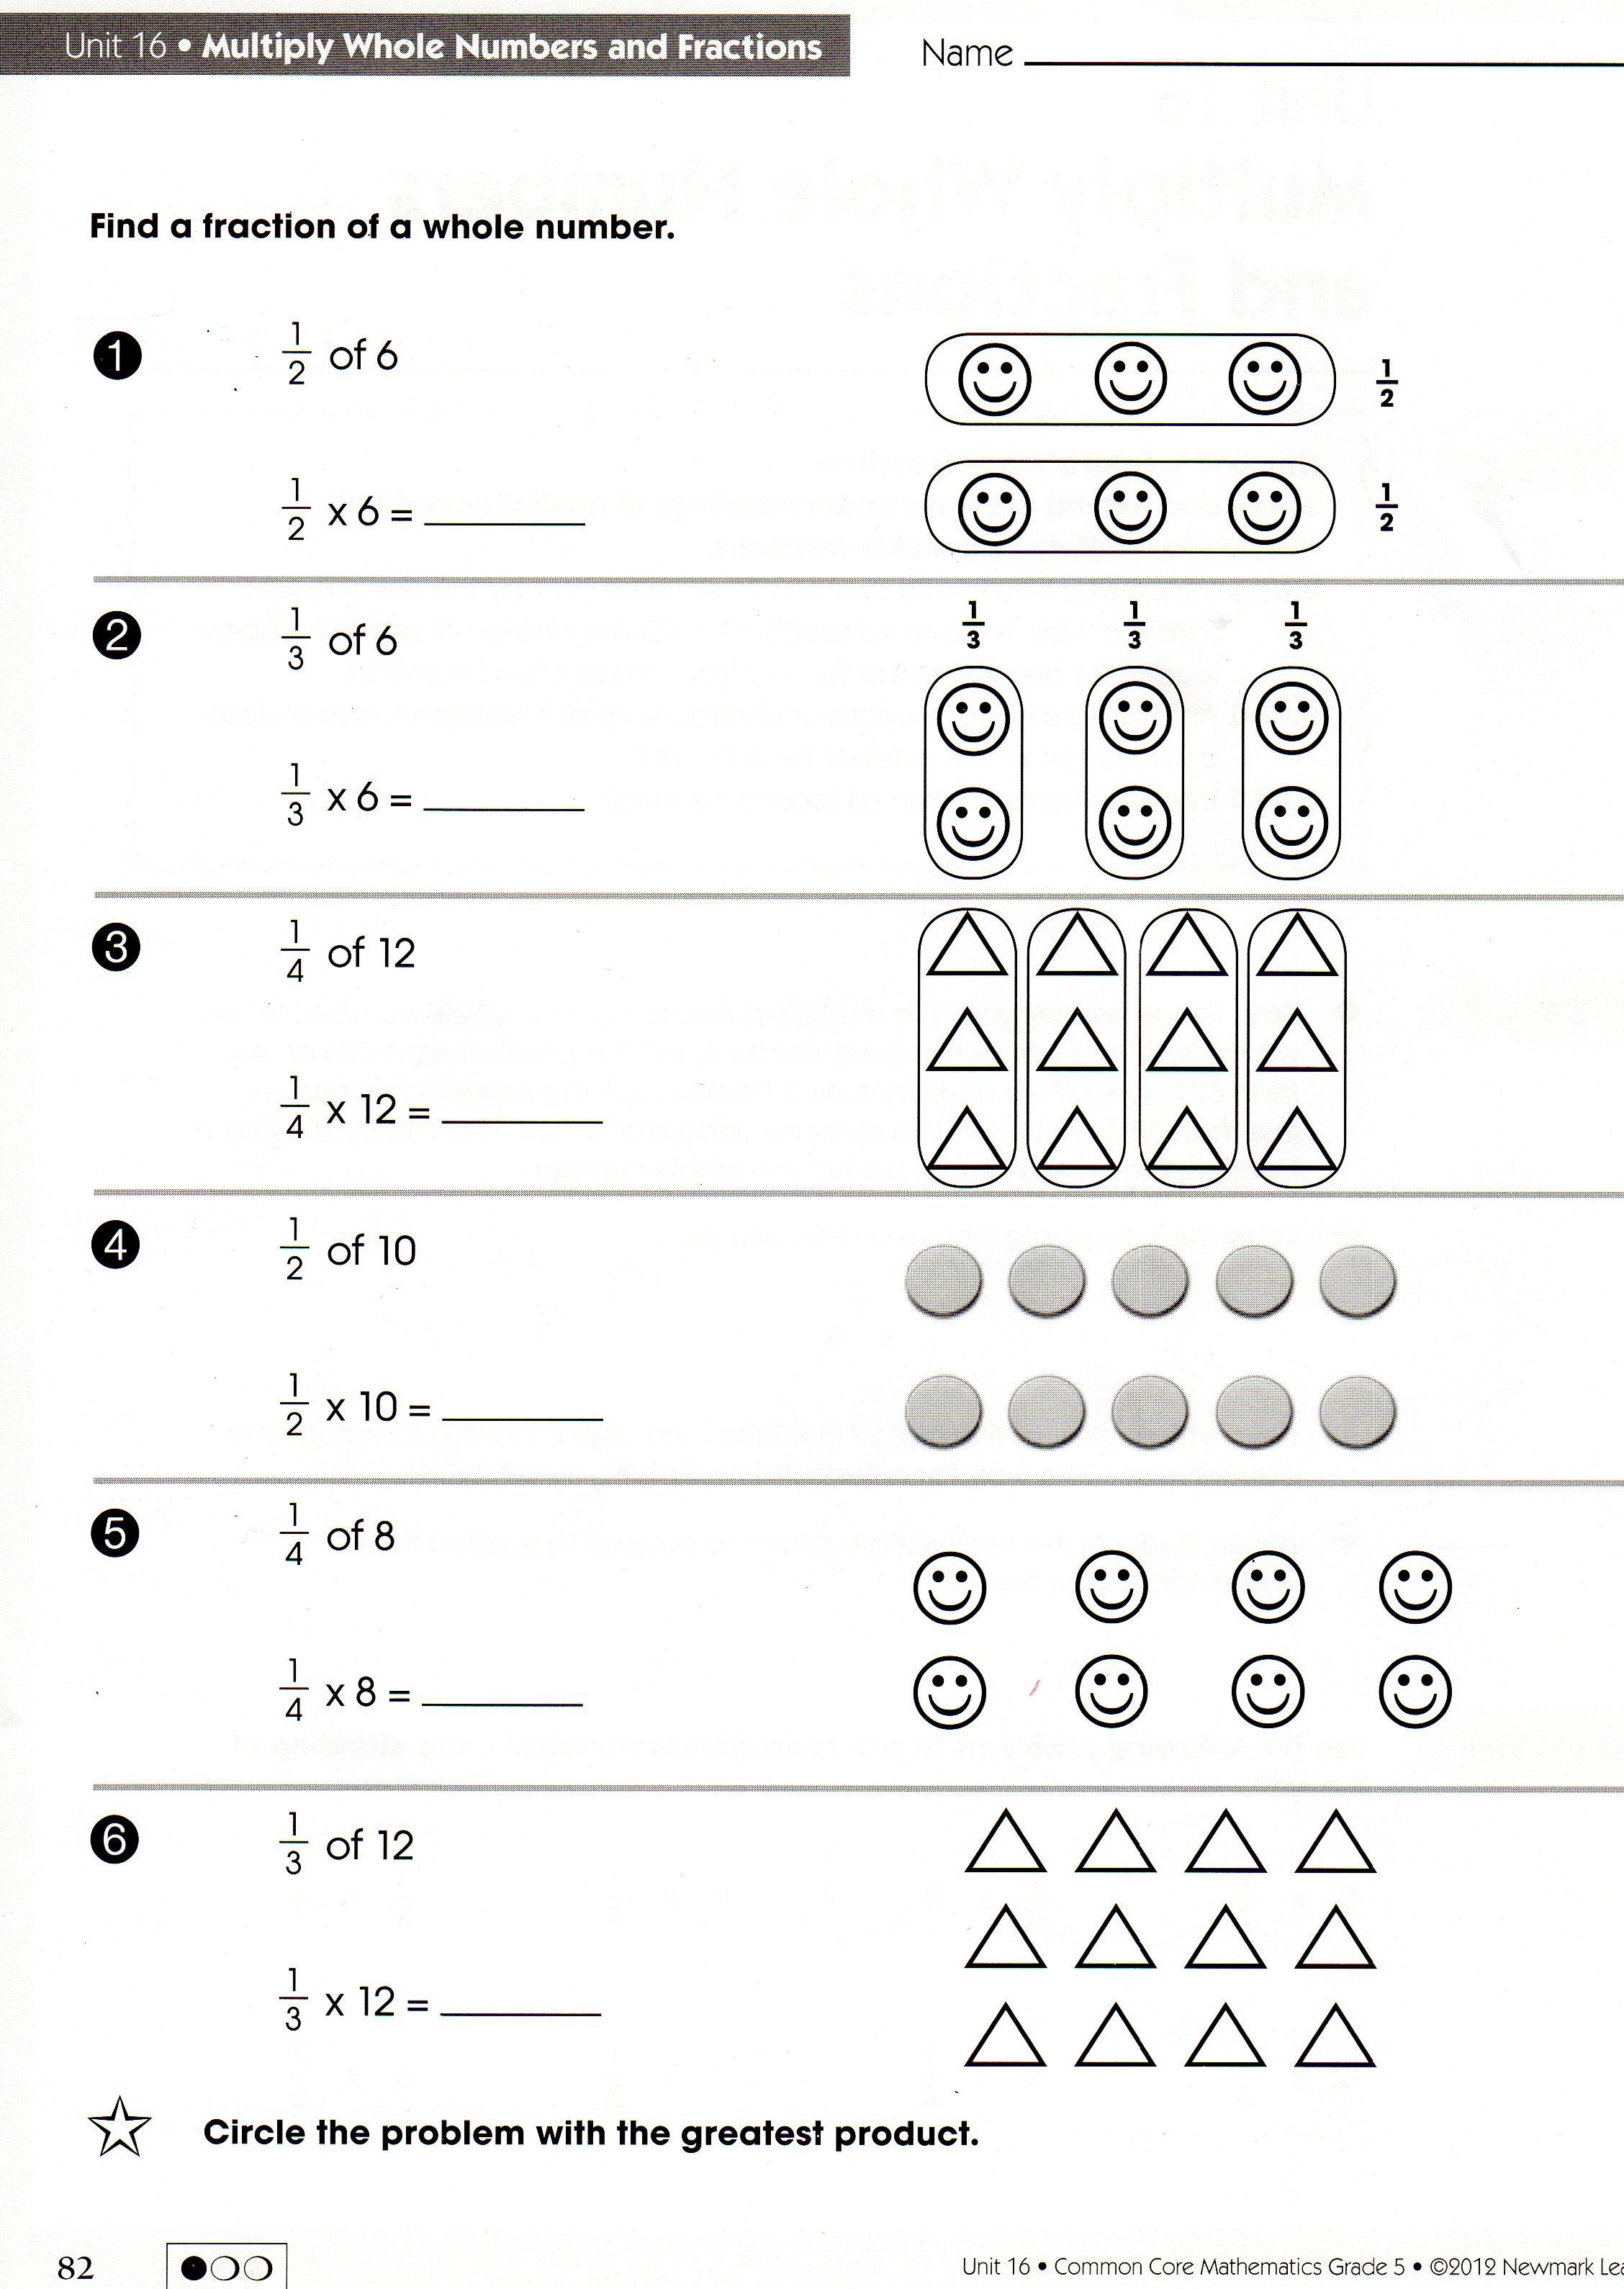 Multiply Fractions By Whole Numbers Worksheet Multiplying – Multiplying Fractions and Whole Numbers Worksheets